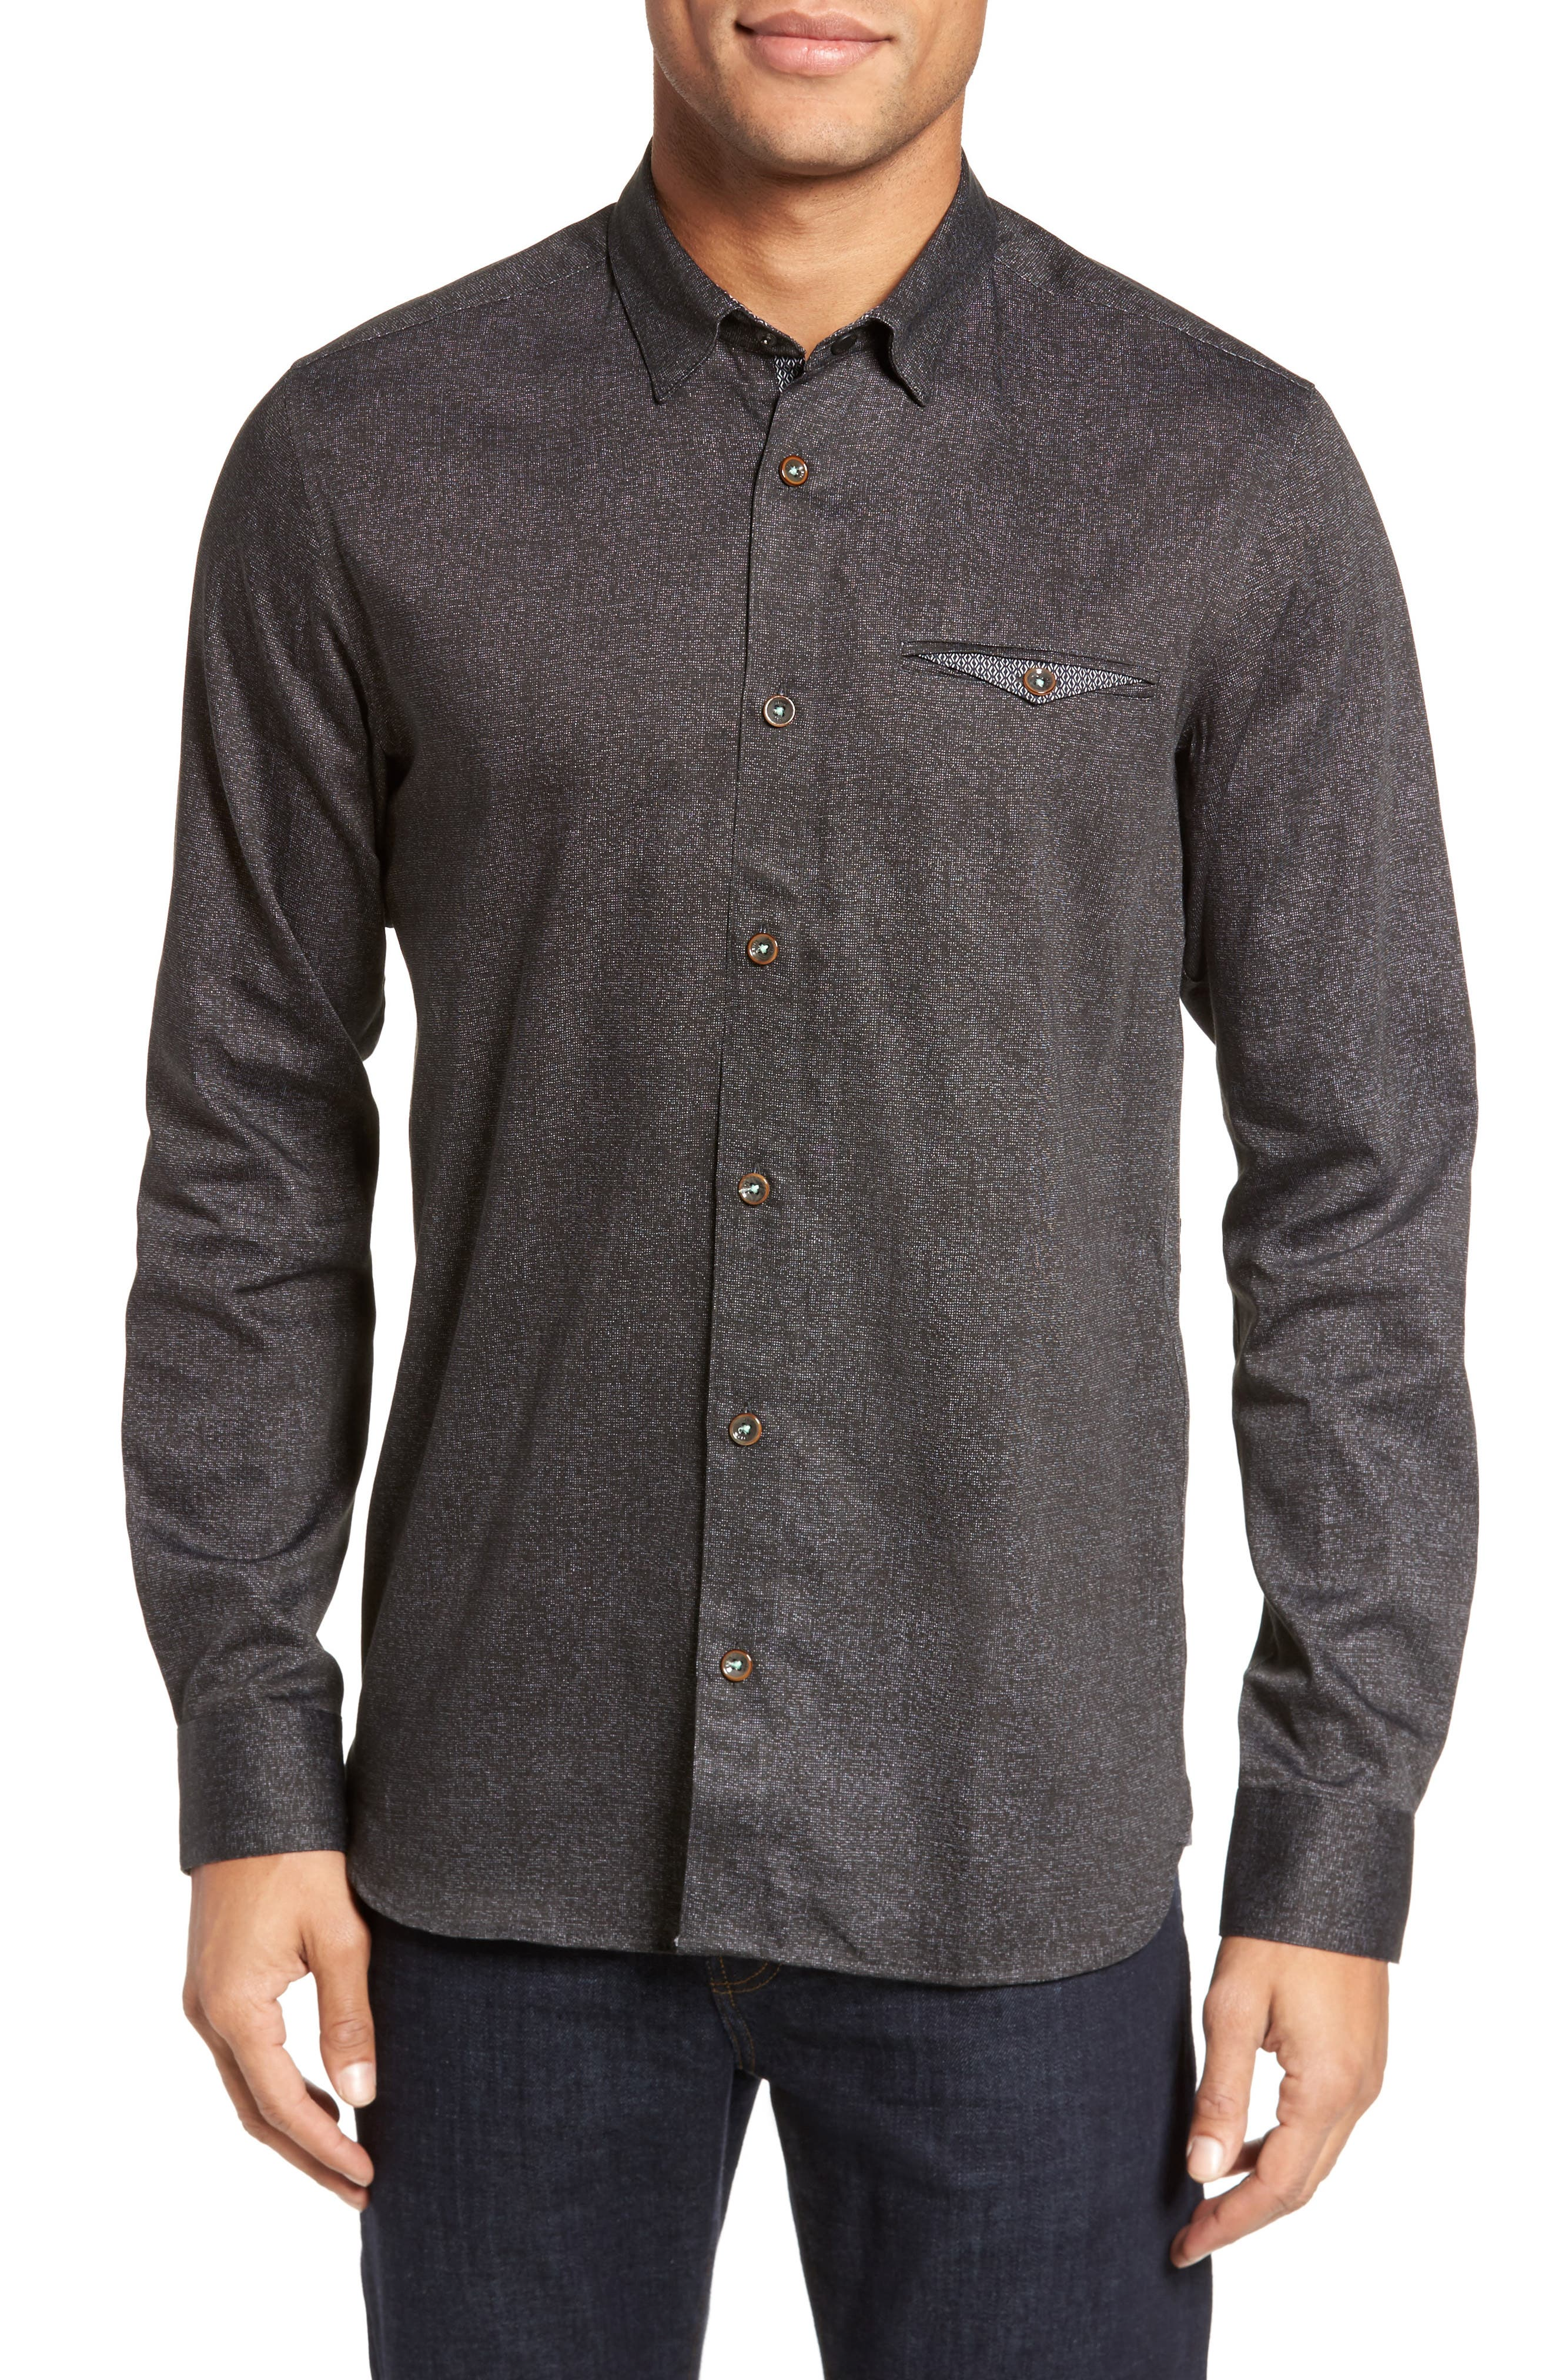 Alternate Image 1 Selected - Ted Baker London Norbor Modern Slim Fit Microdot Print Sport Shirt